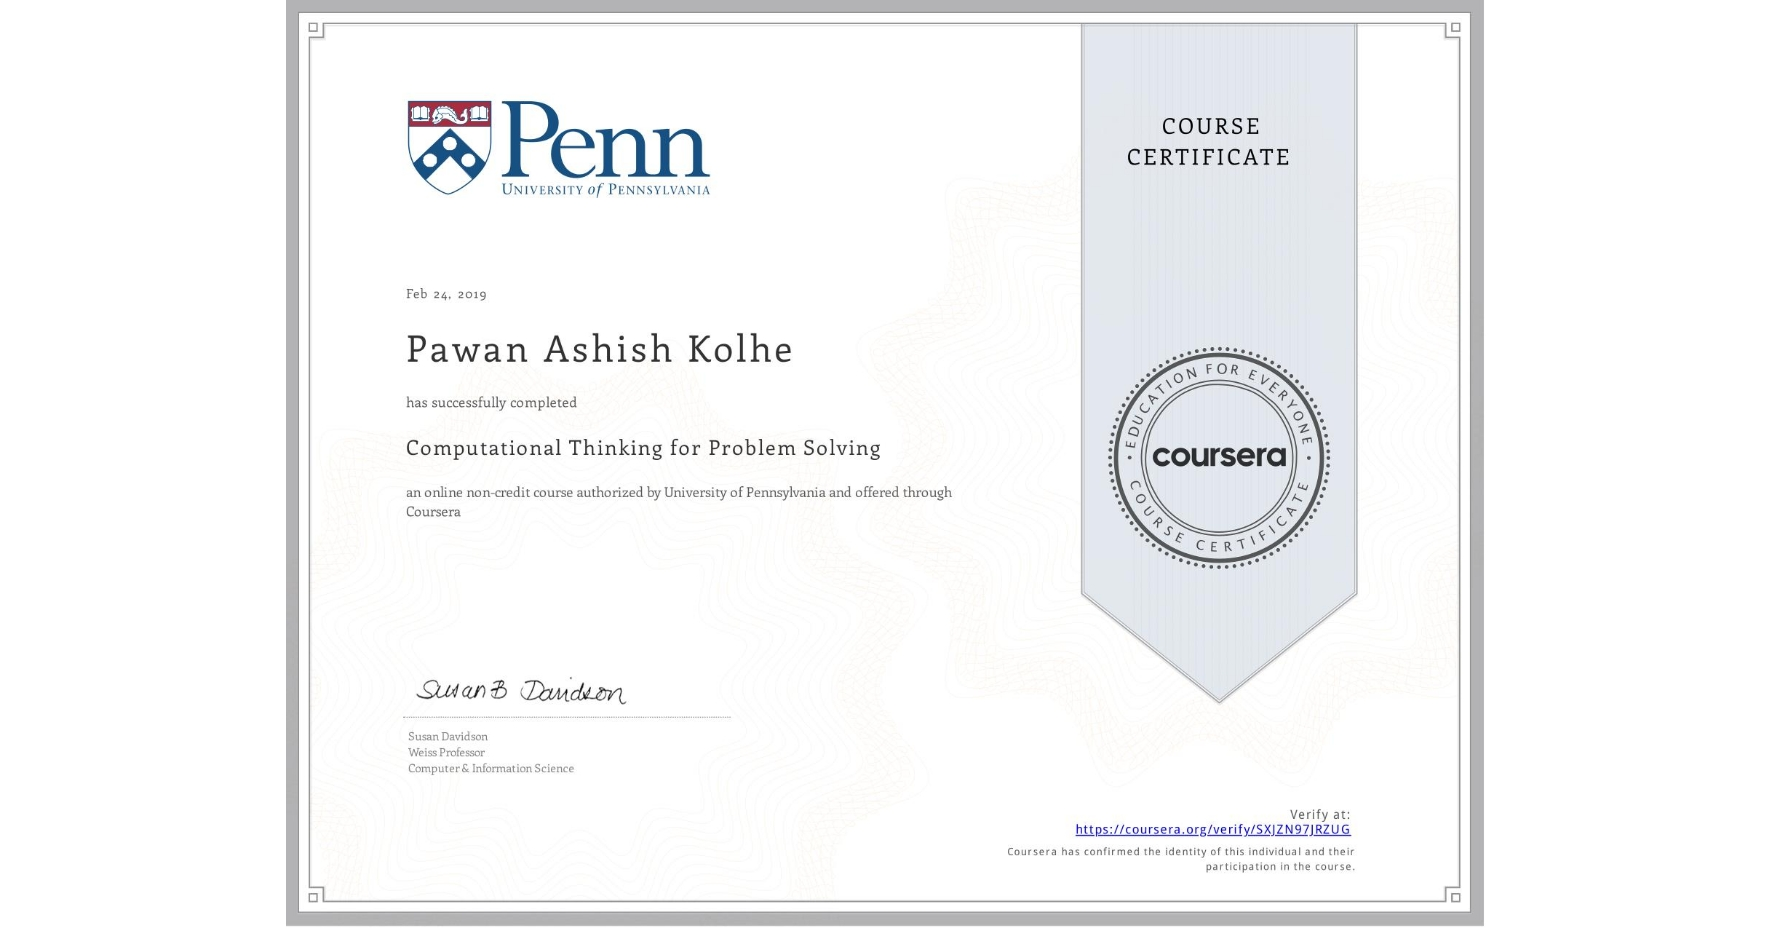 View certificate for Pawan Ashish Kolhe, Computational Thinking for Problem Solving, an online non-credit course authorized by University of Pennsylvania and offered through Coursera